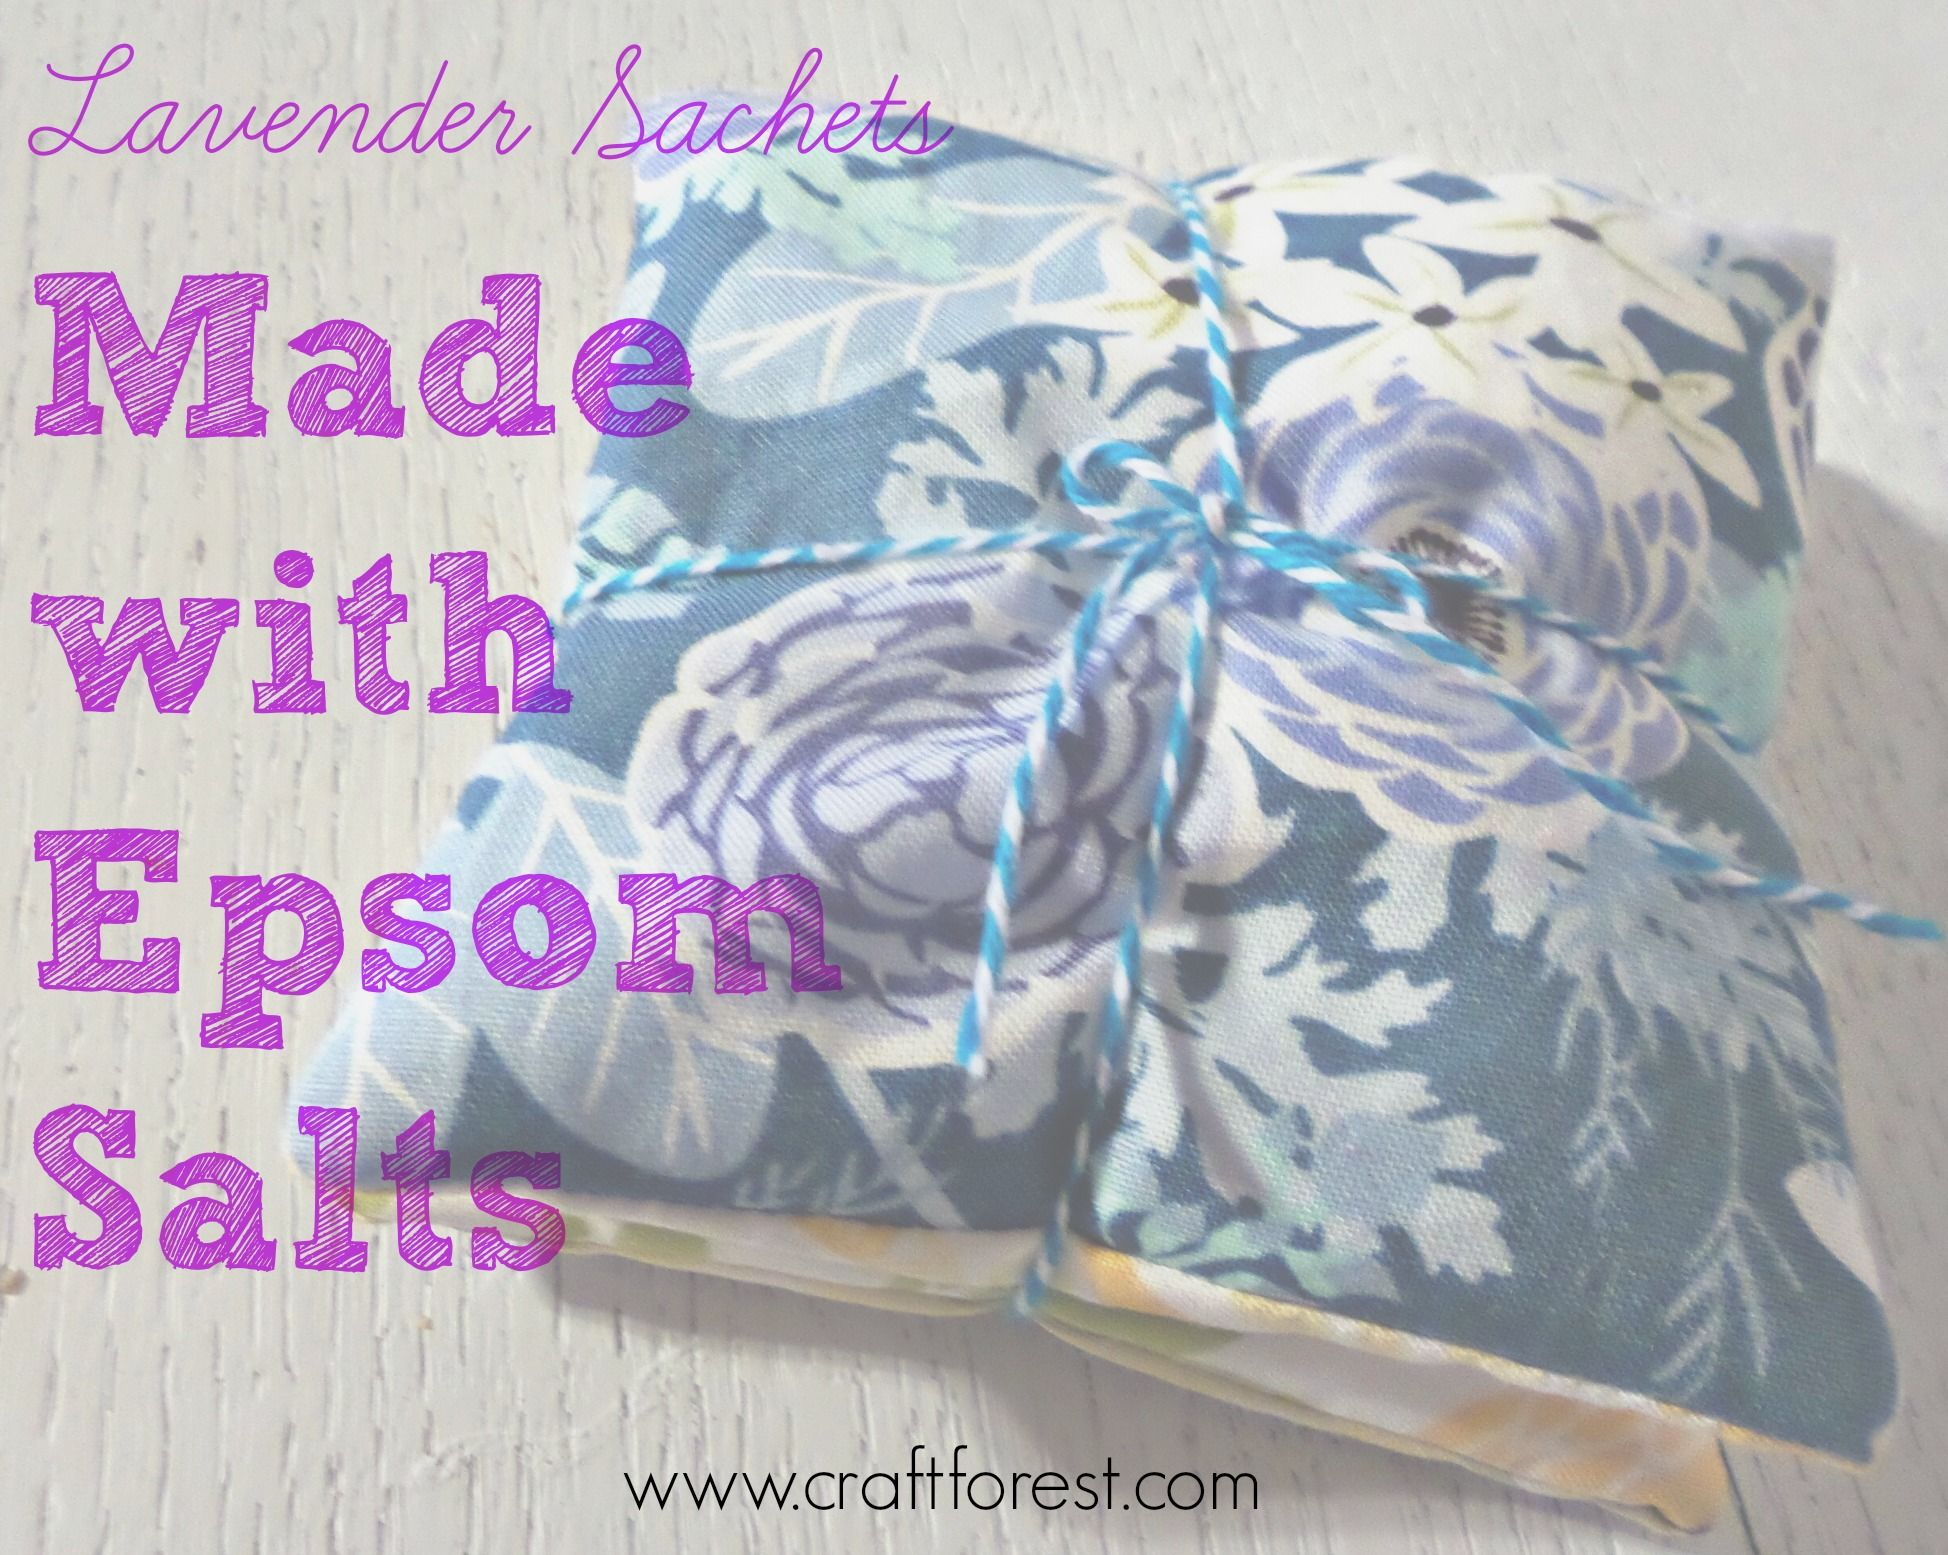 Superior Quick, Easy DIY Sachets For Drawers And Linen Closet Using Epsom Salts.